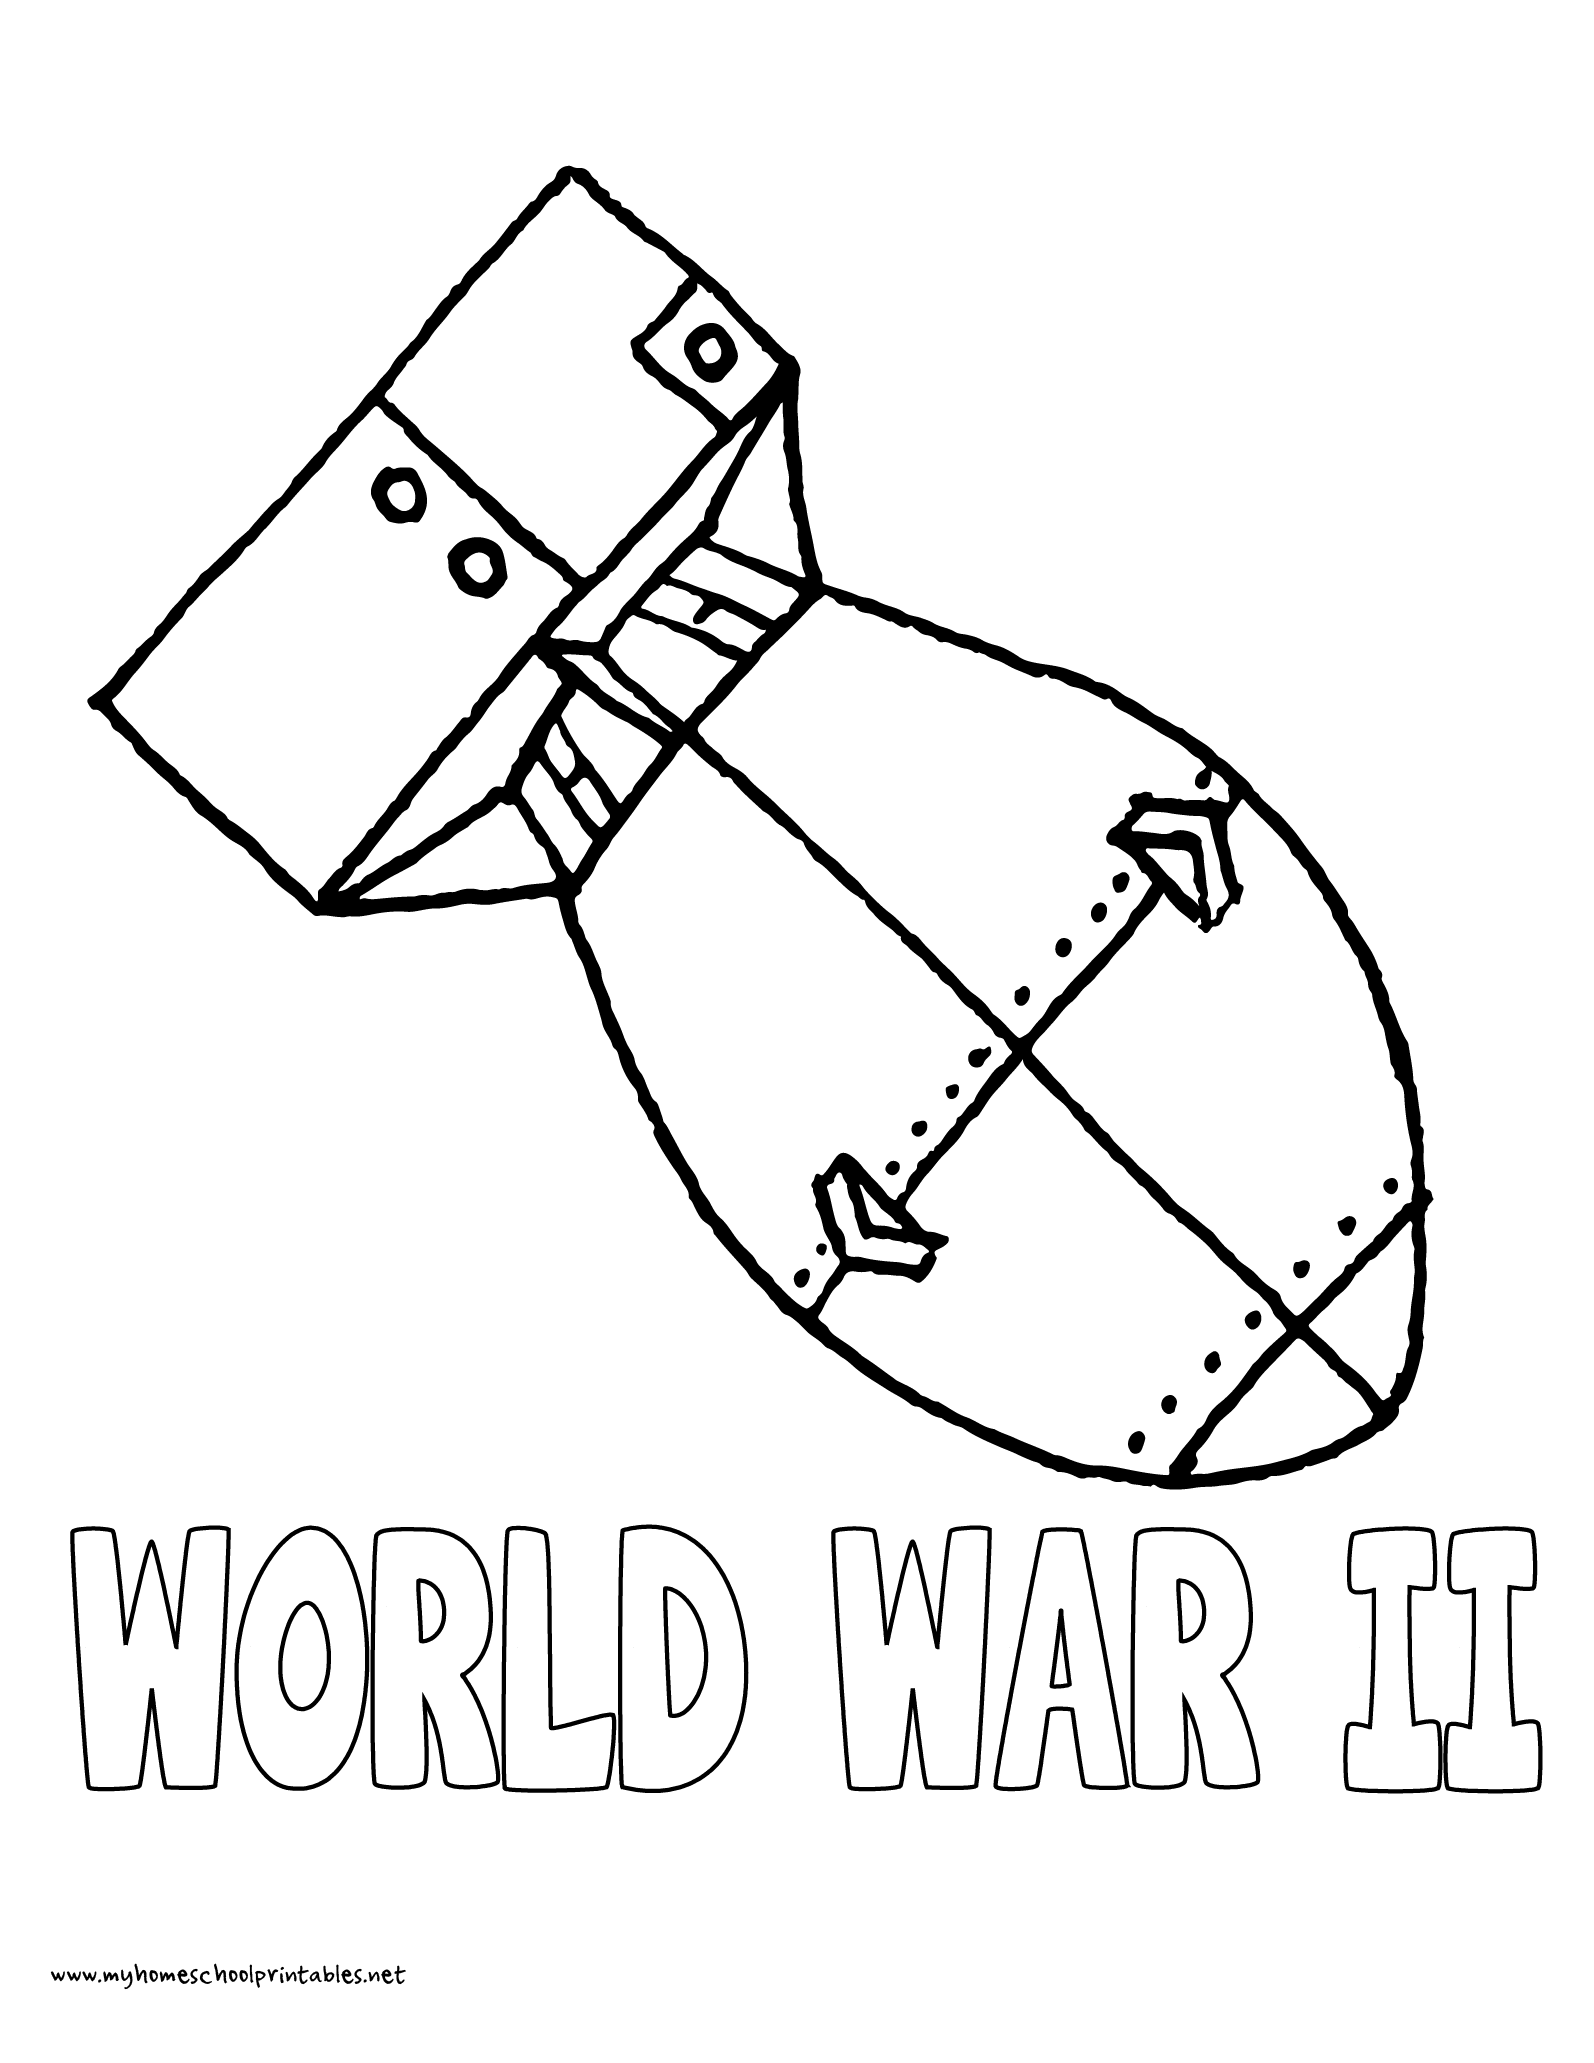 world war 2 colouring sheets my homeschool printables history coloring pages volume 4 world sheets 2 colouring war